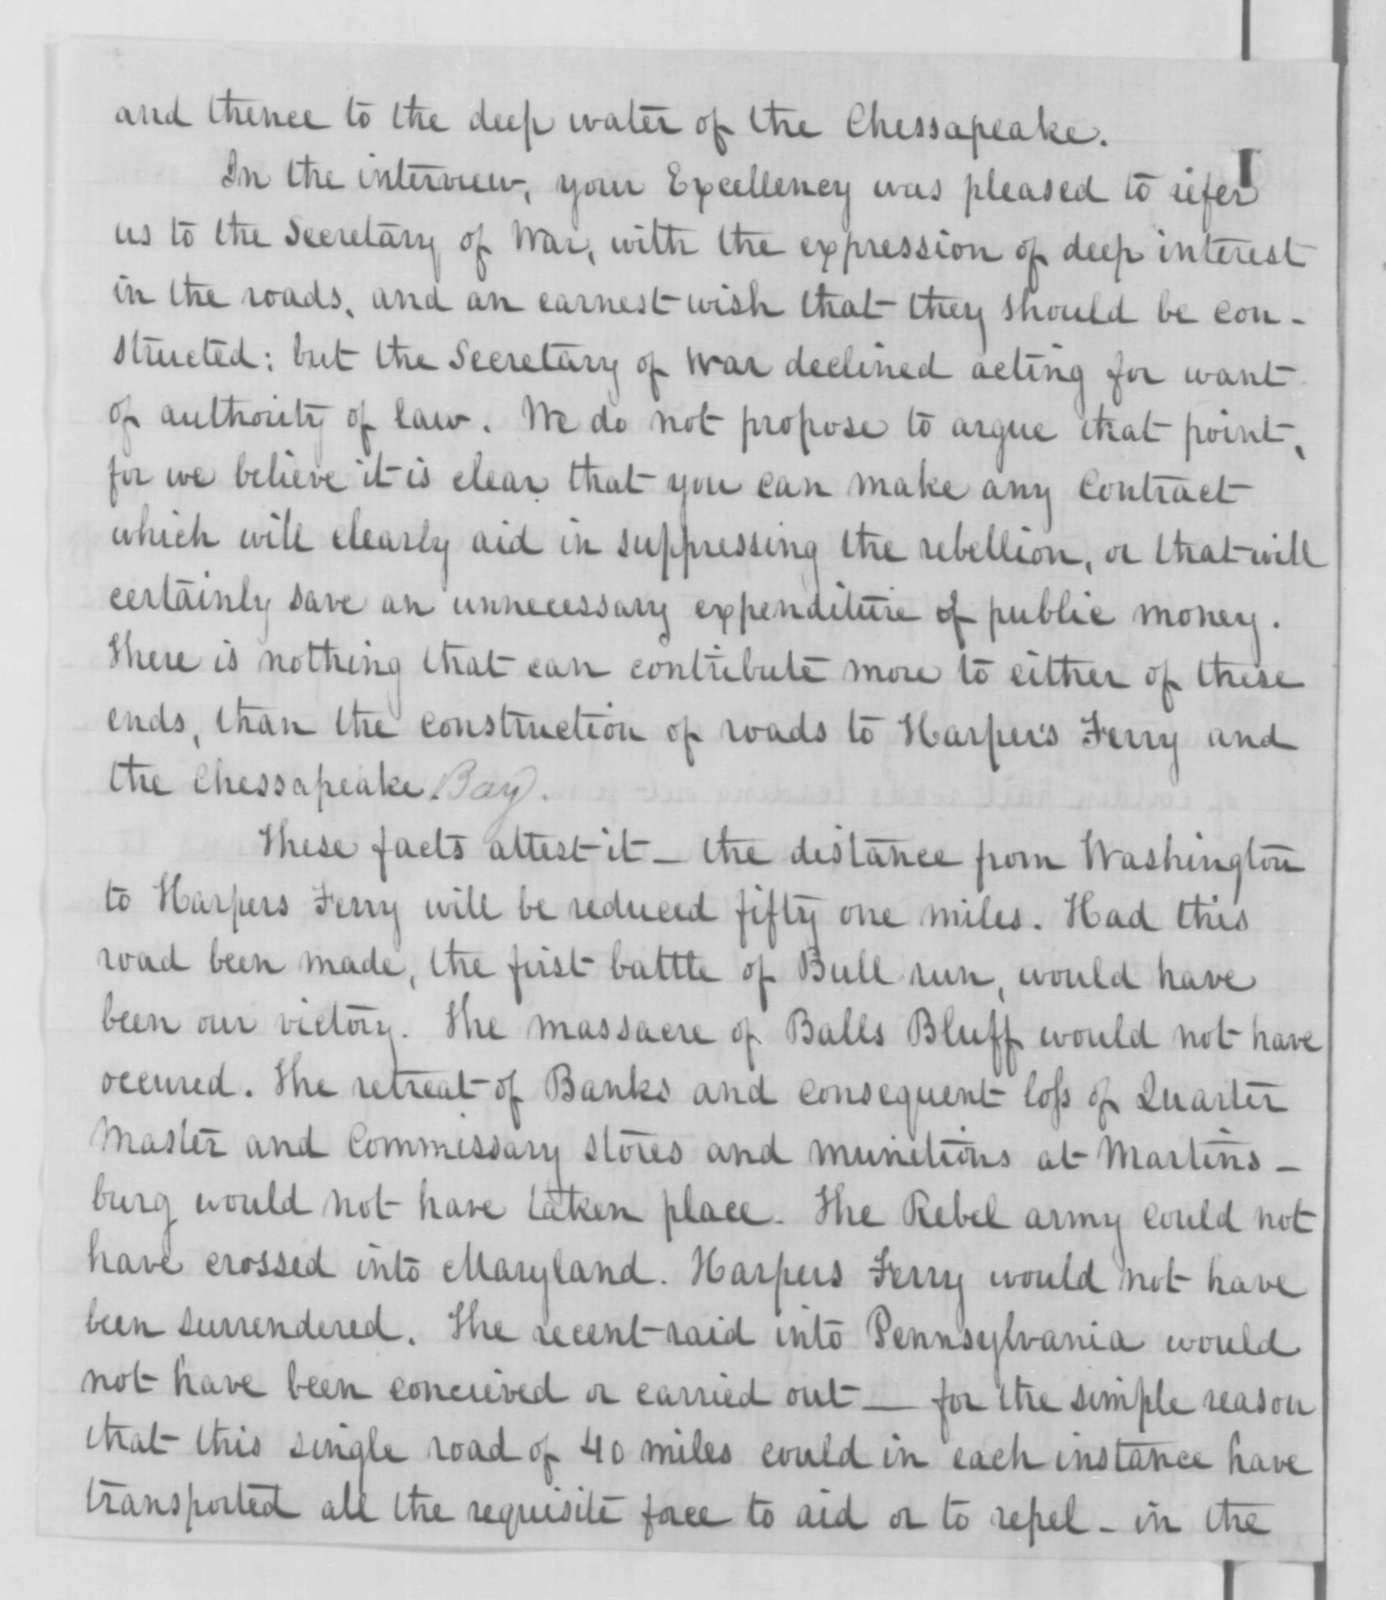 Richard Wallach, et al. to Abraham Lincoln, Tuesday, October 28, 1862  (Petition concerning railroads in Washington D.C.)